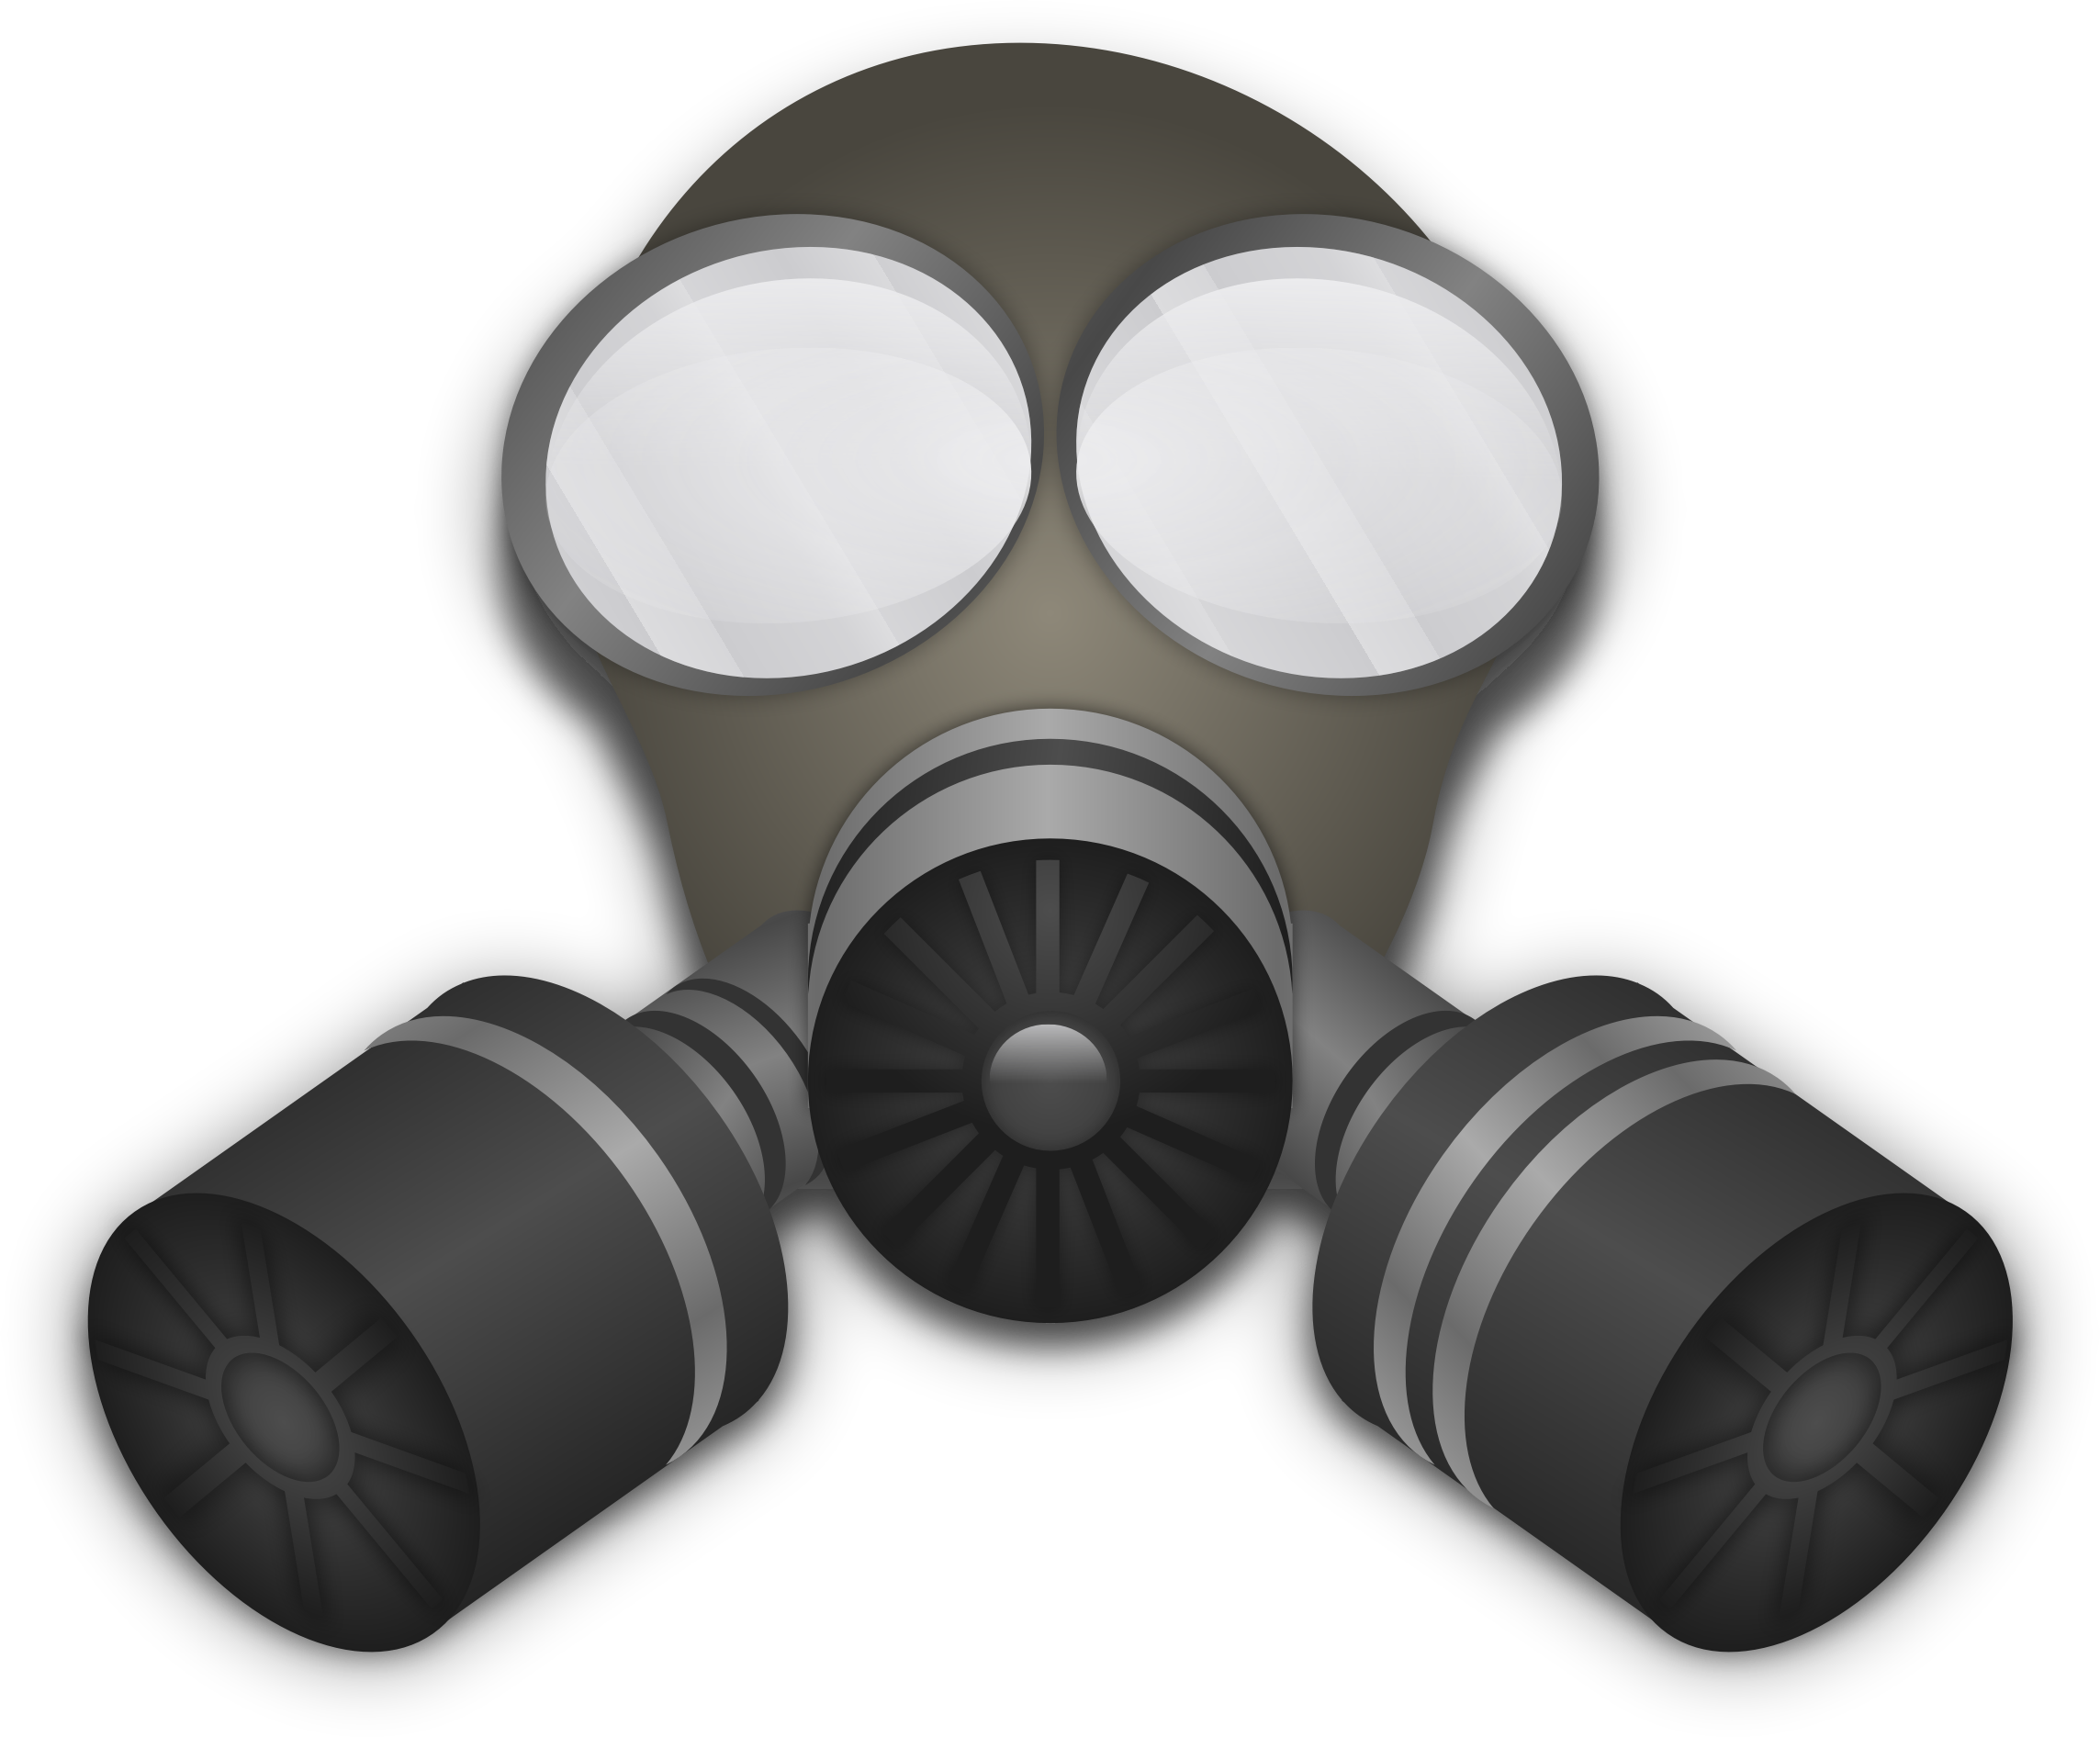 gas mask png transparent images #39143